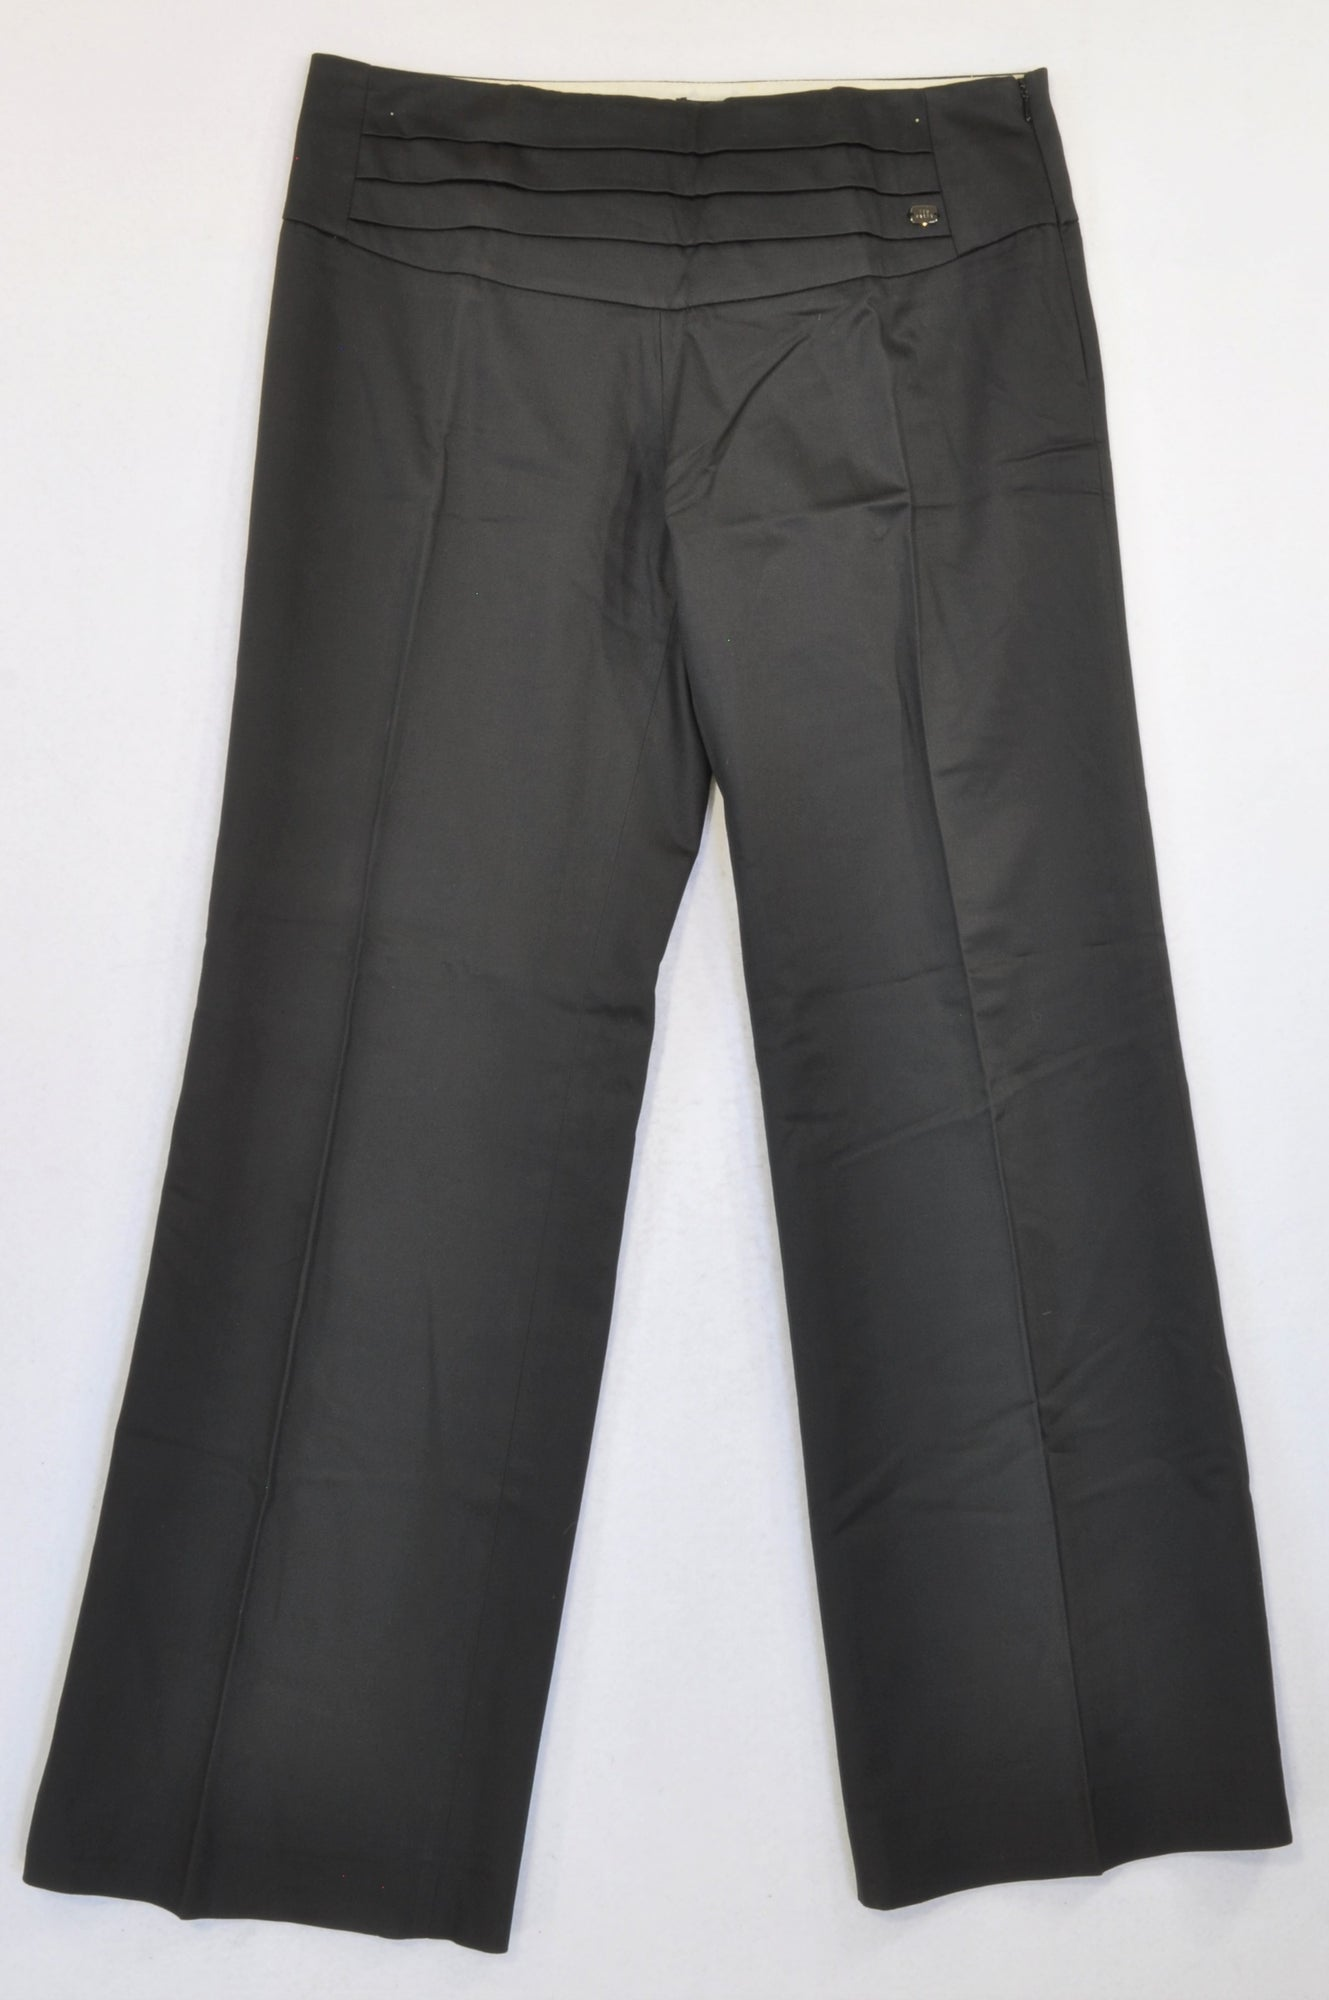 Ted Baker UK Black Pleat Detail Slack Pants Women Size 12